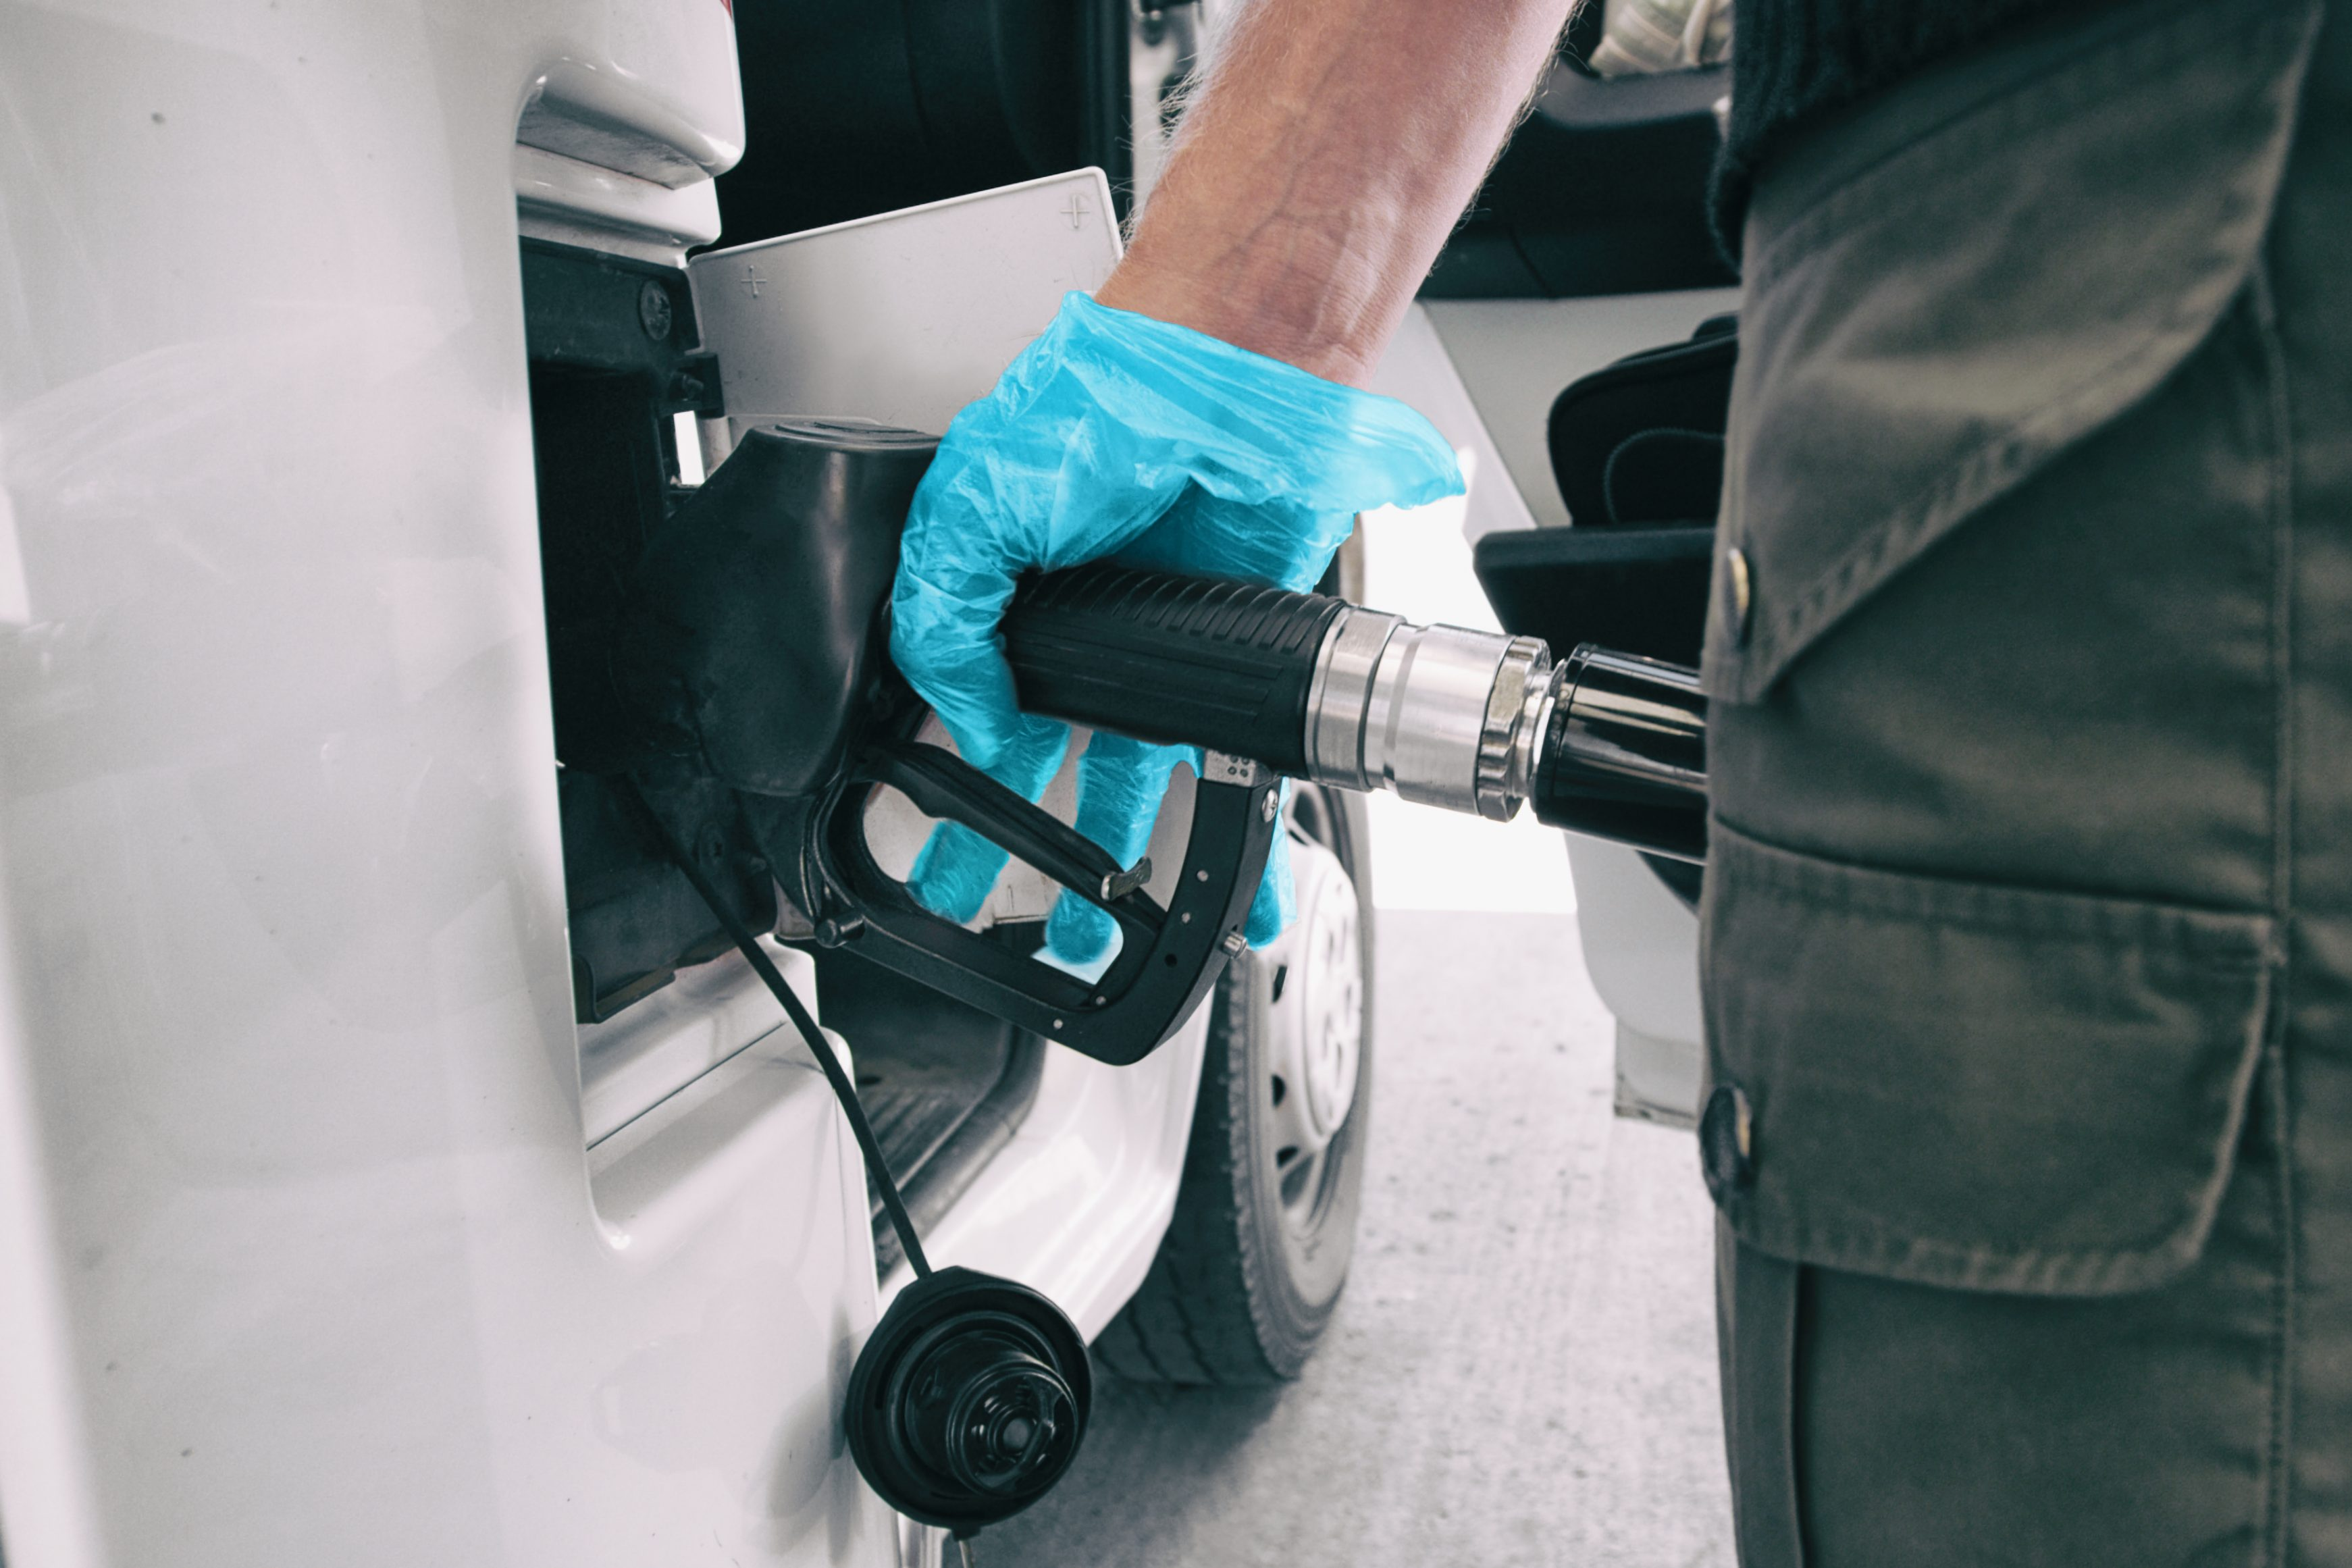 filling car up with glove on